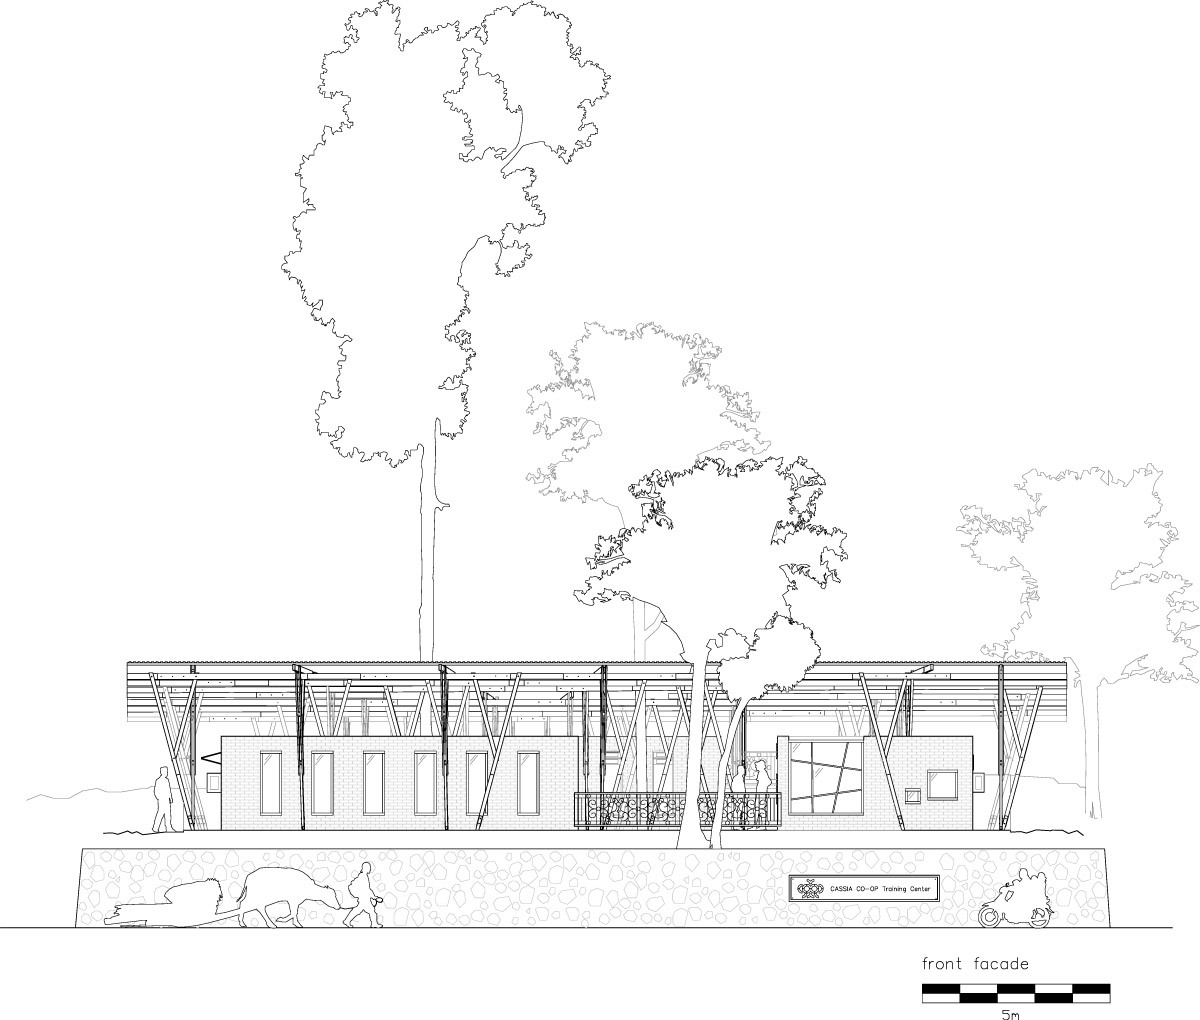 Facade Front (Image: TYIN tegnestue architects)